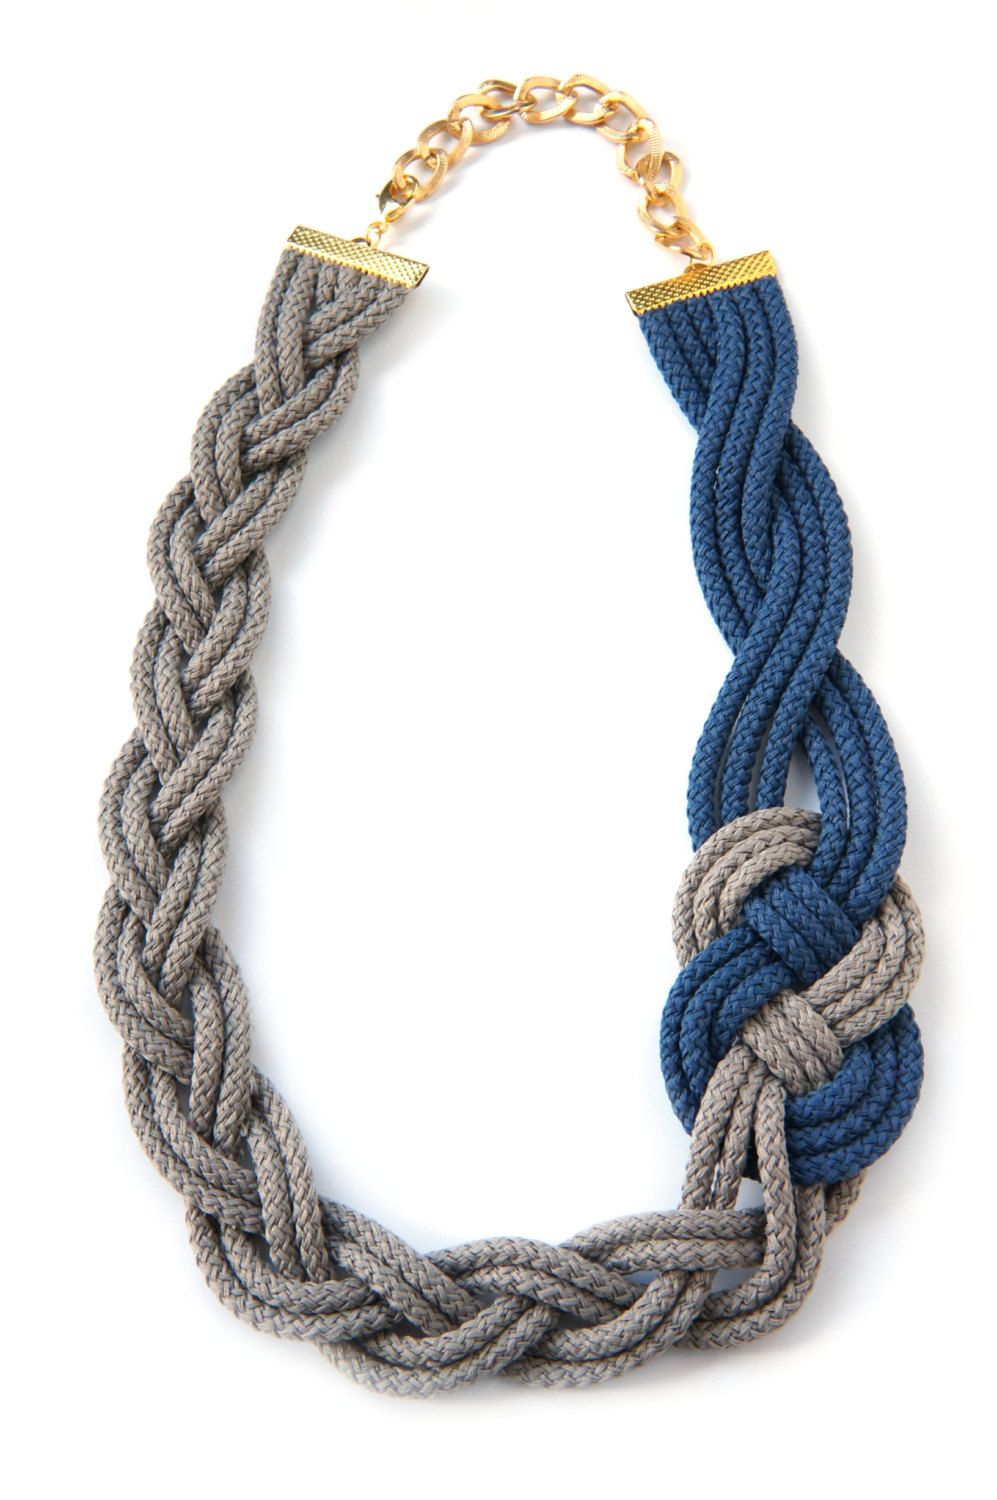 Braided Necklacesailor Knotnautical Styleblue Navy And Beige